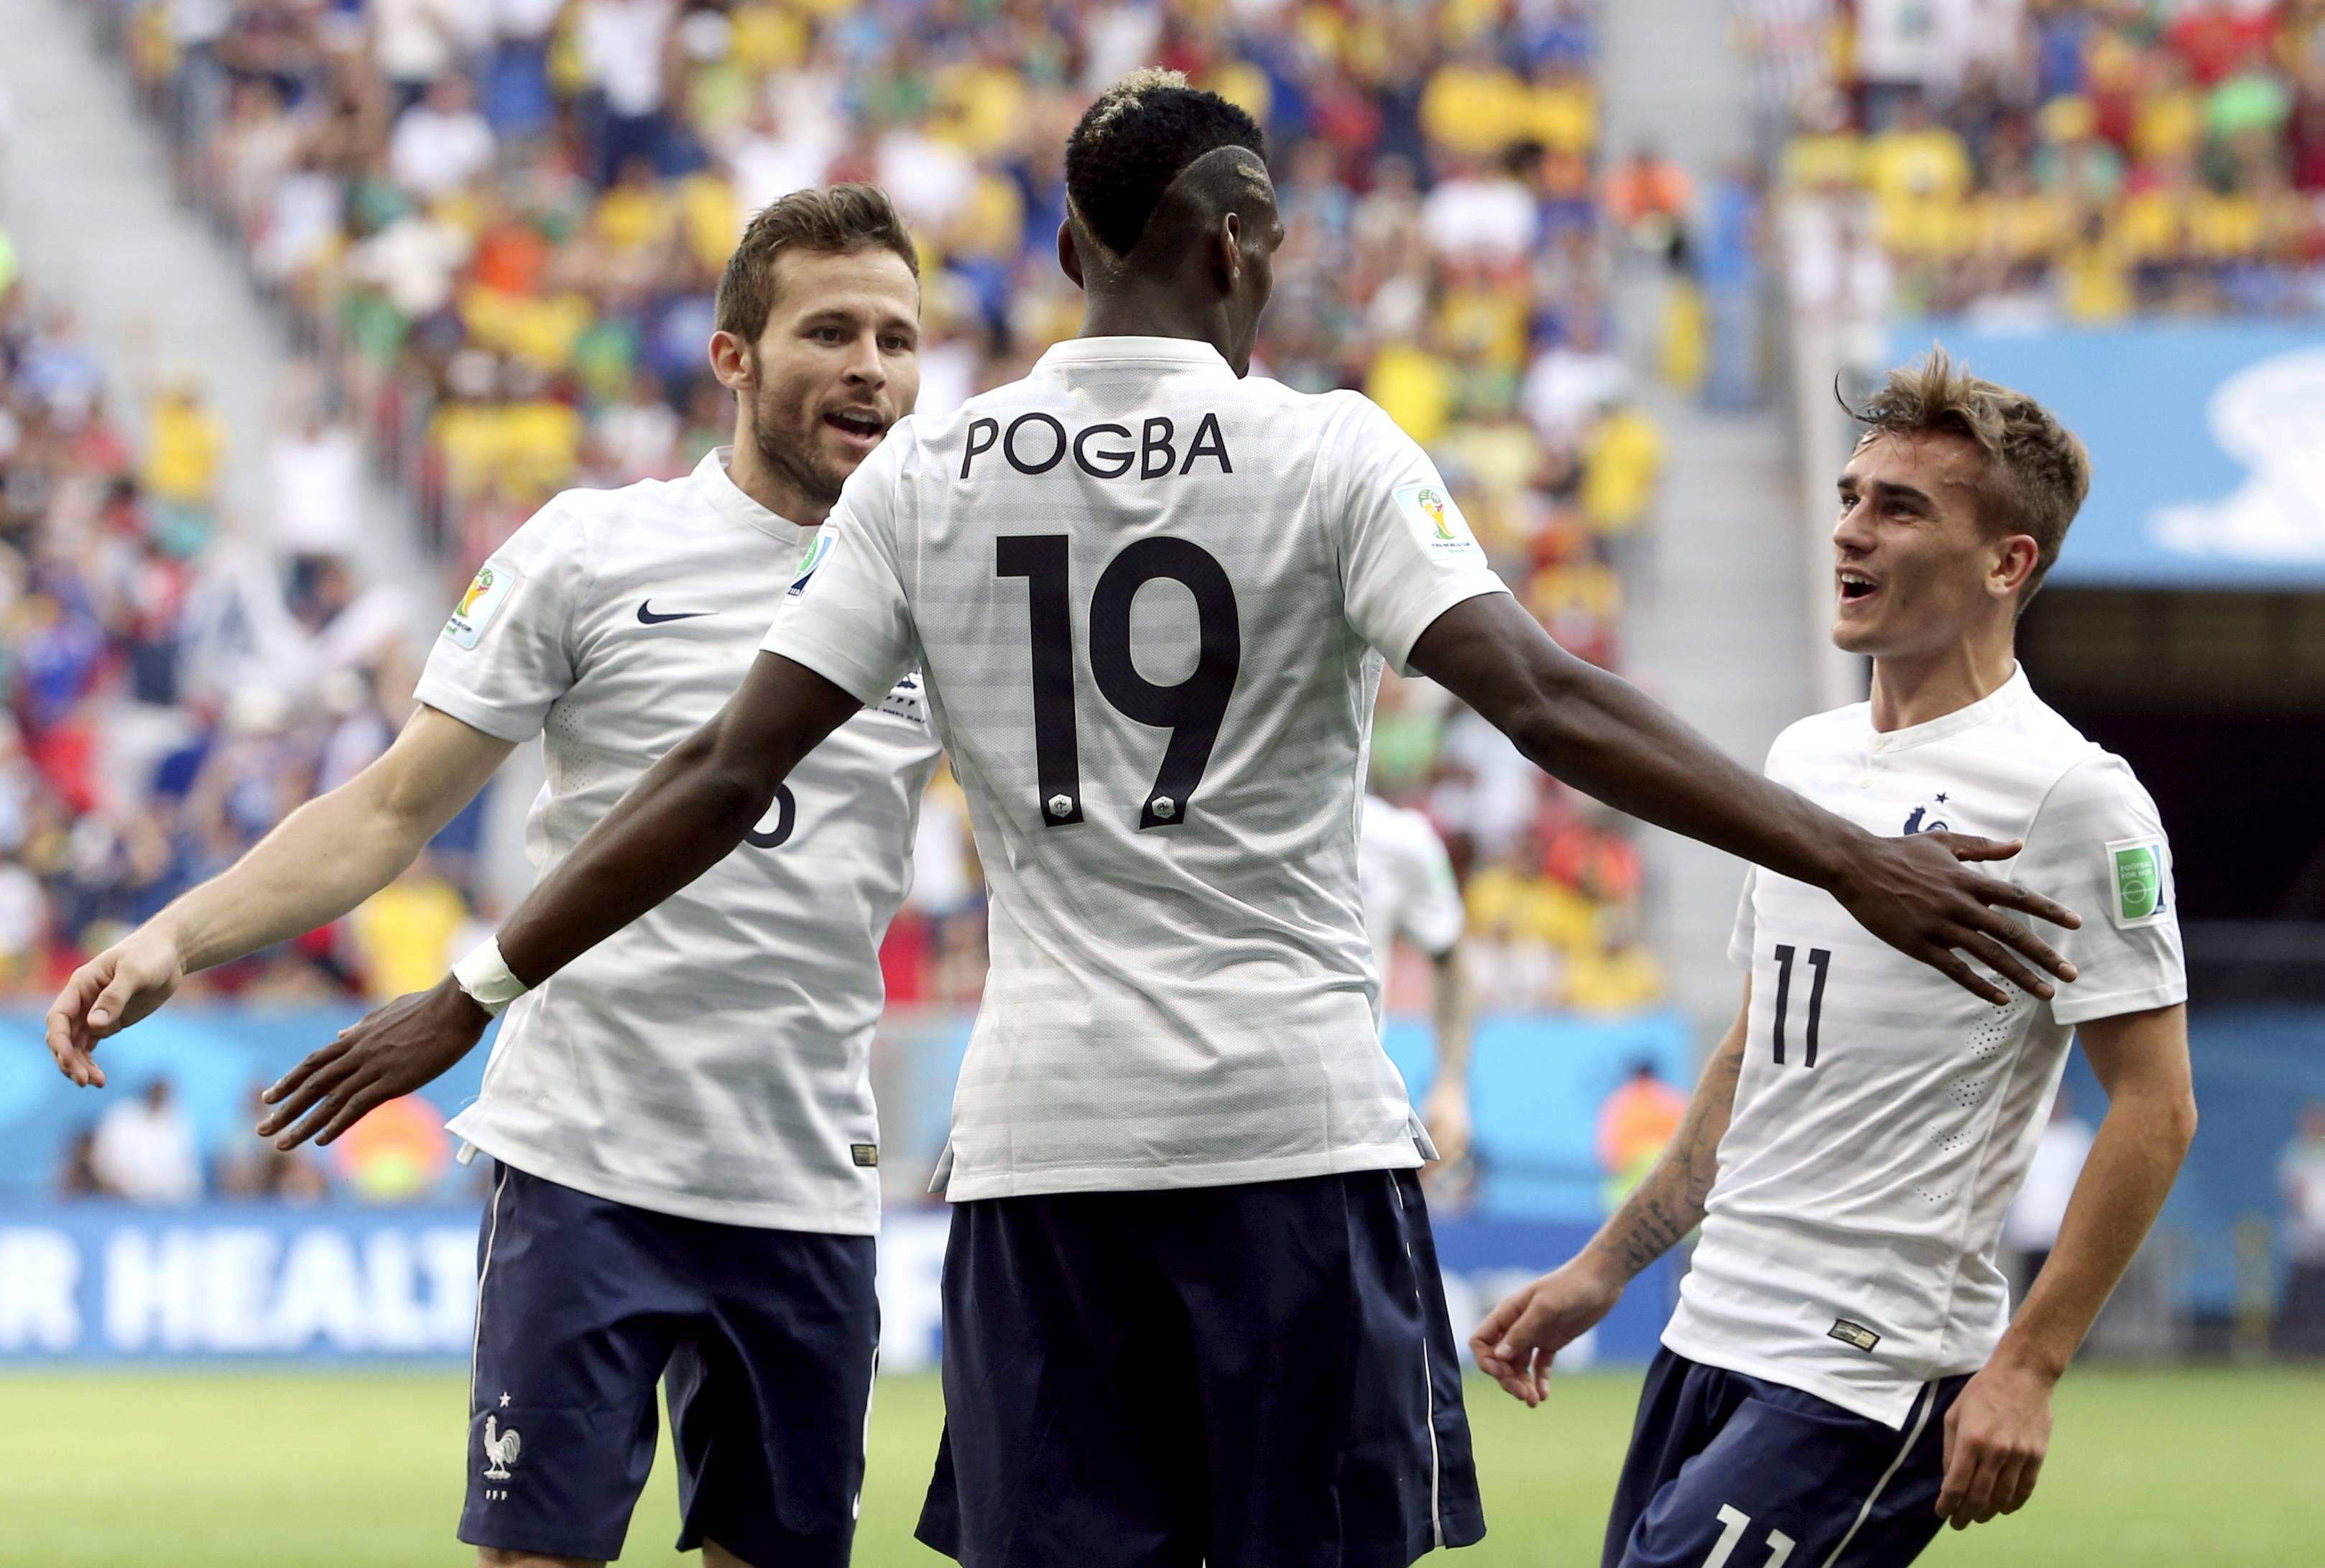 France's Paul Pogba (19) celebrates with teammates Yohan Cabaye, left, and Antoine Griezmann, right, Monday after scoring his side's opening goal during the World Cup round of 16 soccer match against Nigeria at the Estadio Nacional in Brasilia, Brazil.